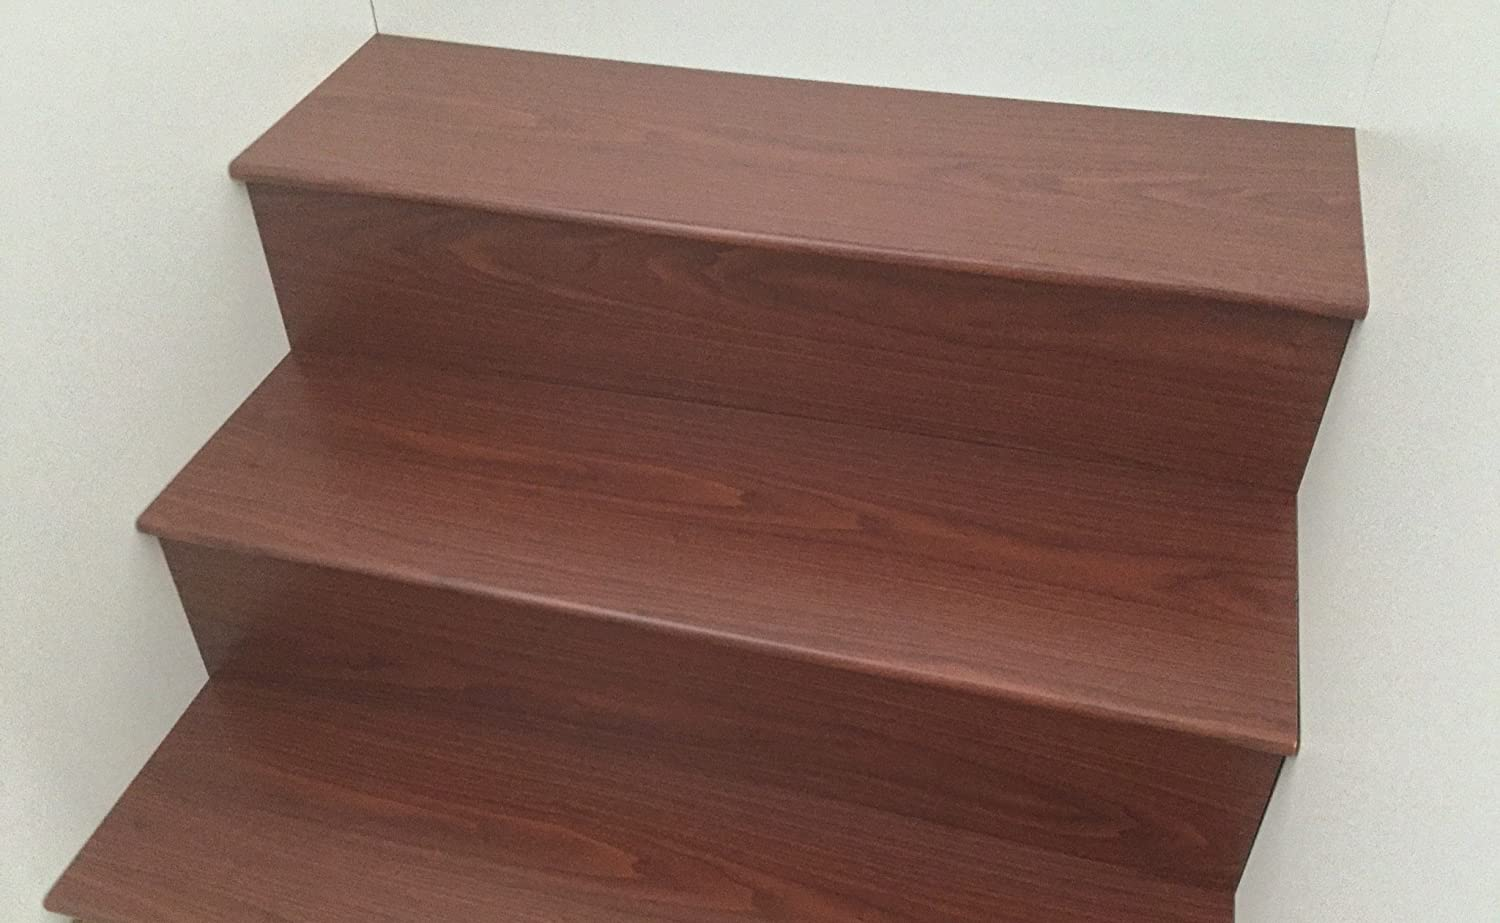 Laminate Flooring Stair Tread 01 Kit Per Box /(Brown Alder/) Jatz  International Corp